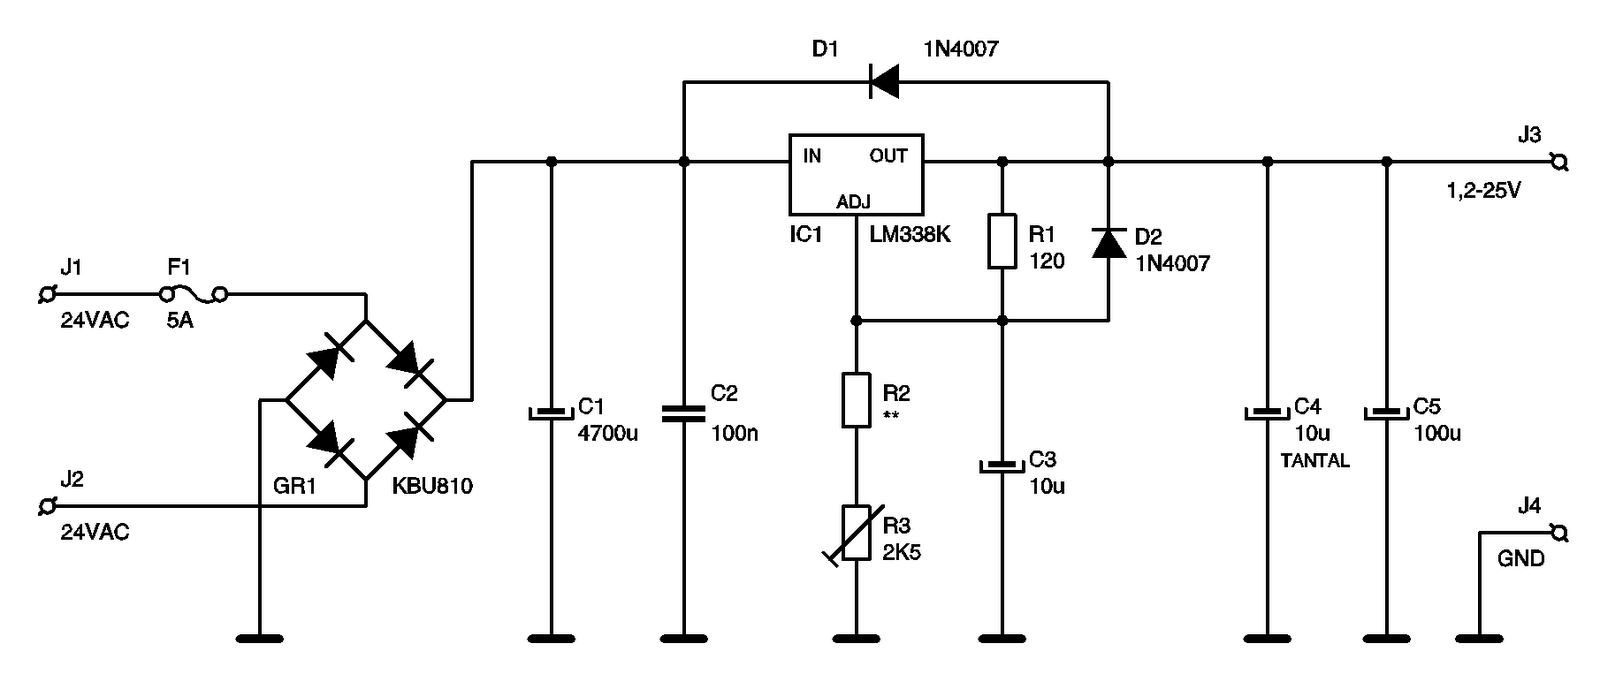 5a power supply lm338k schematic gif